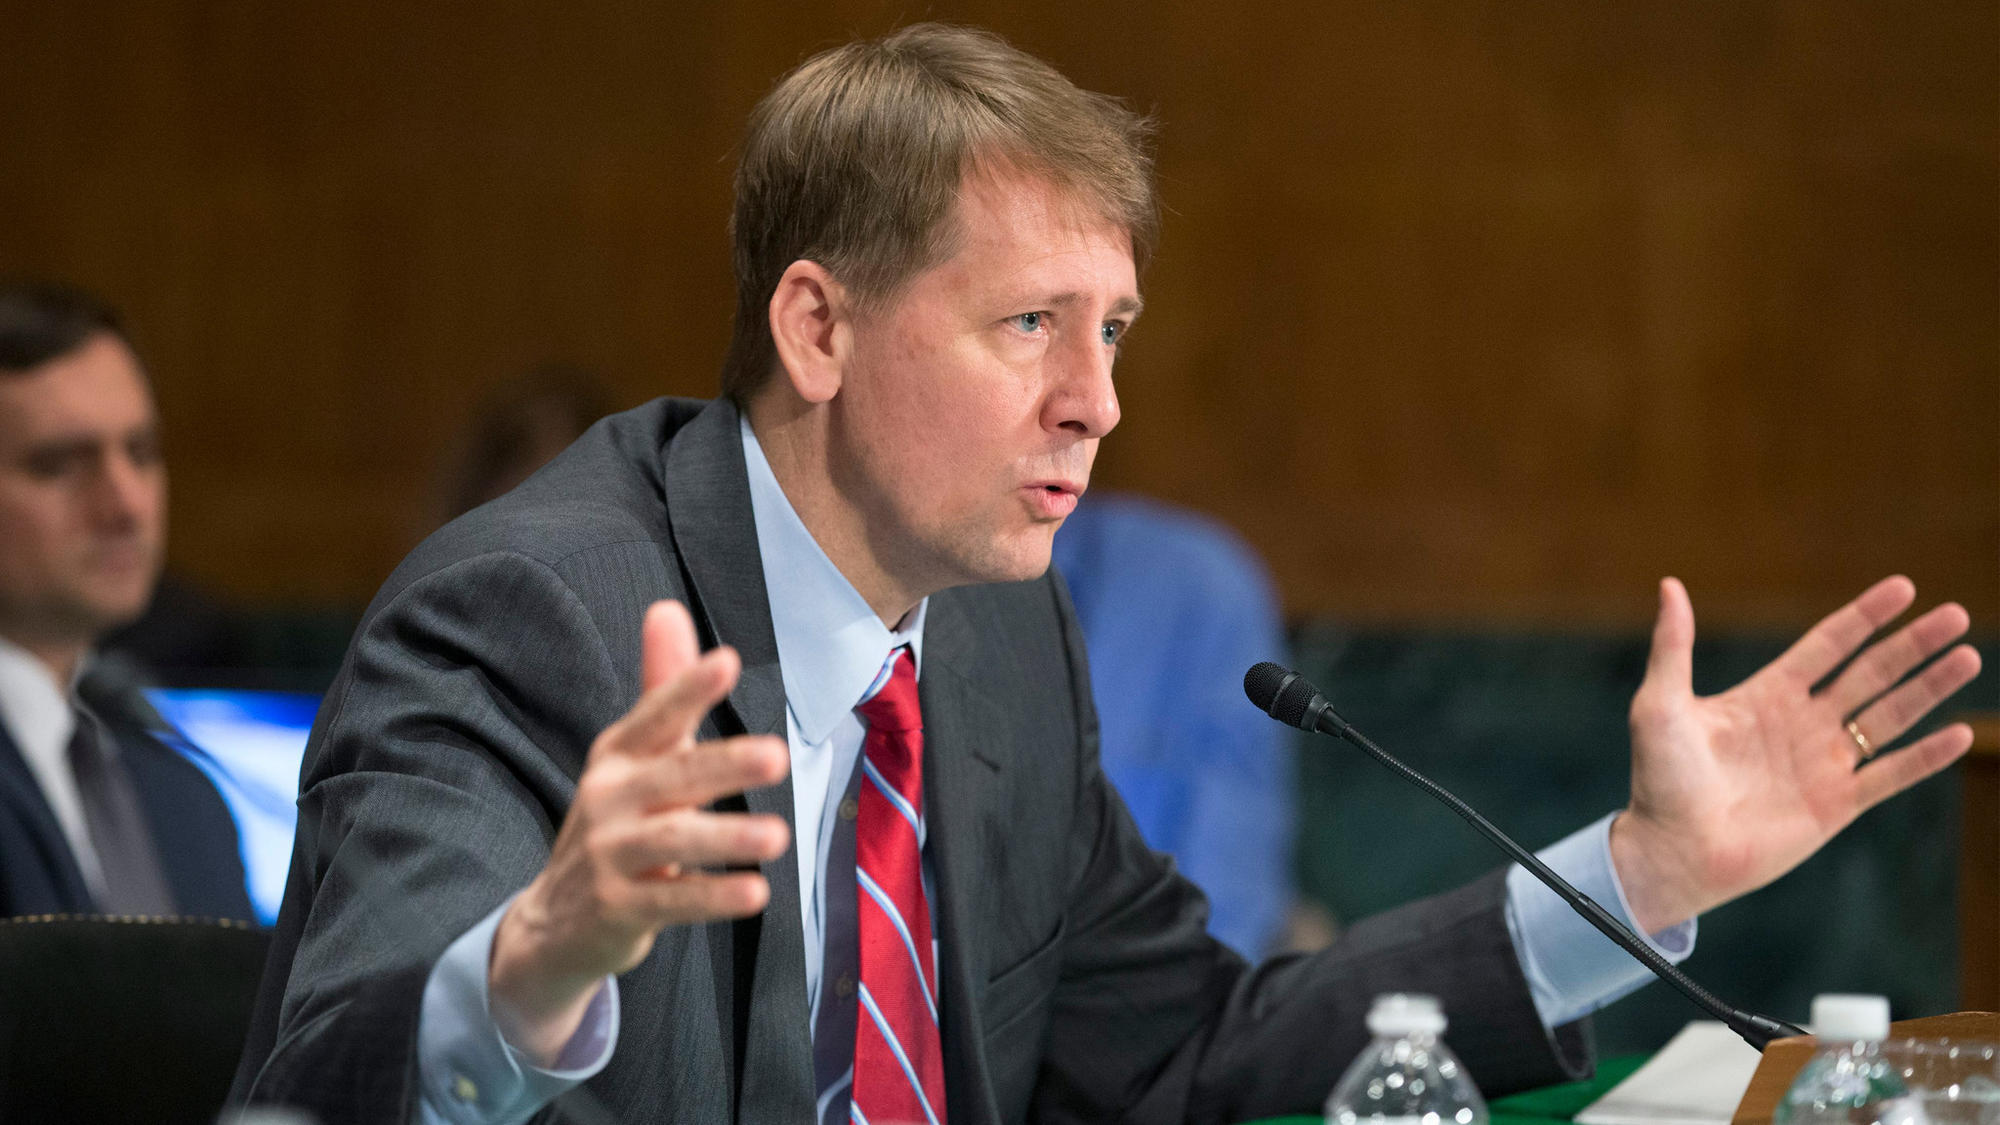 House lawmakers move to repeal new CFPB payday lending rules - LA Times